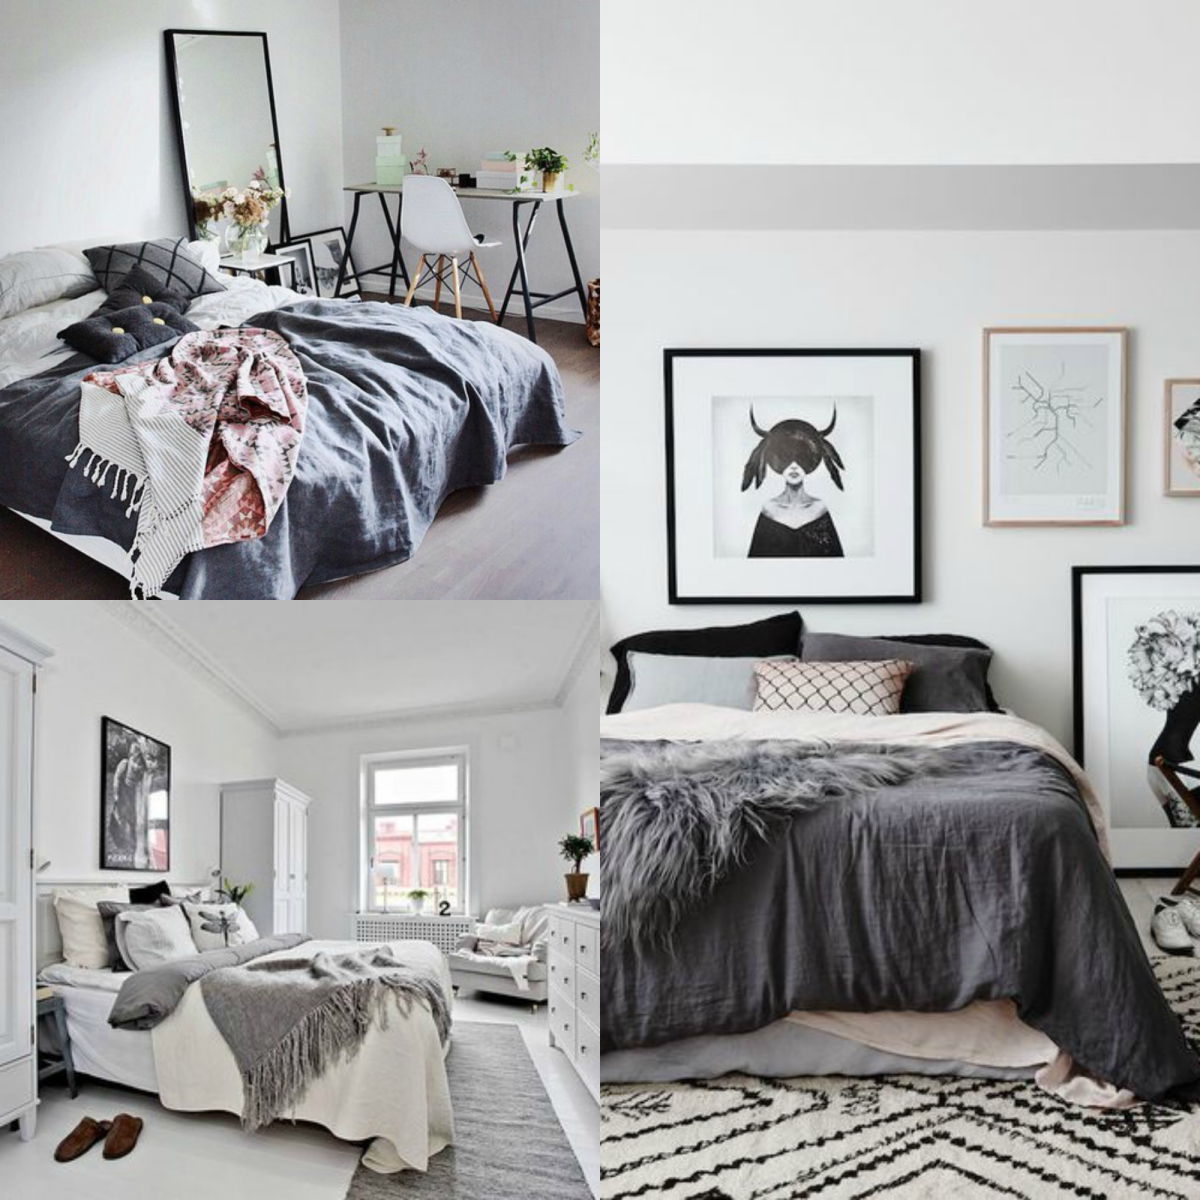 tumblr inspiration zimmer die besten einrichtungsideen. Black Bedroom Furniture Sets. Home Design Ideas